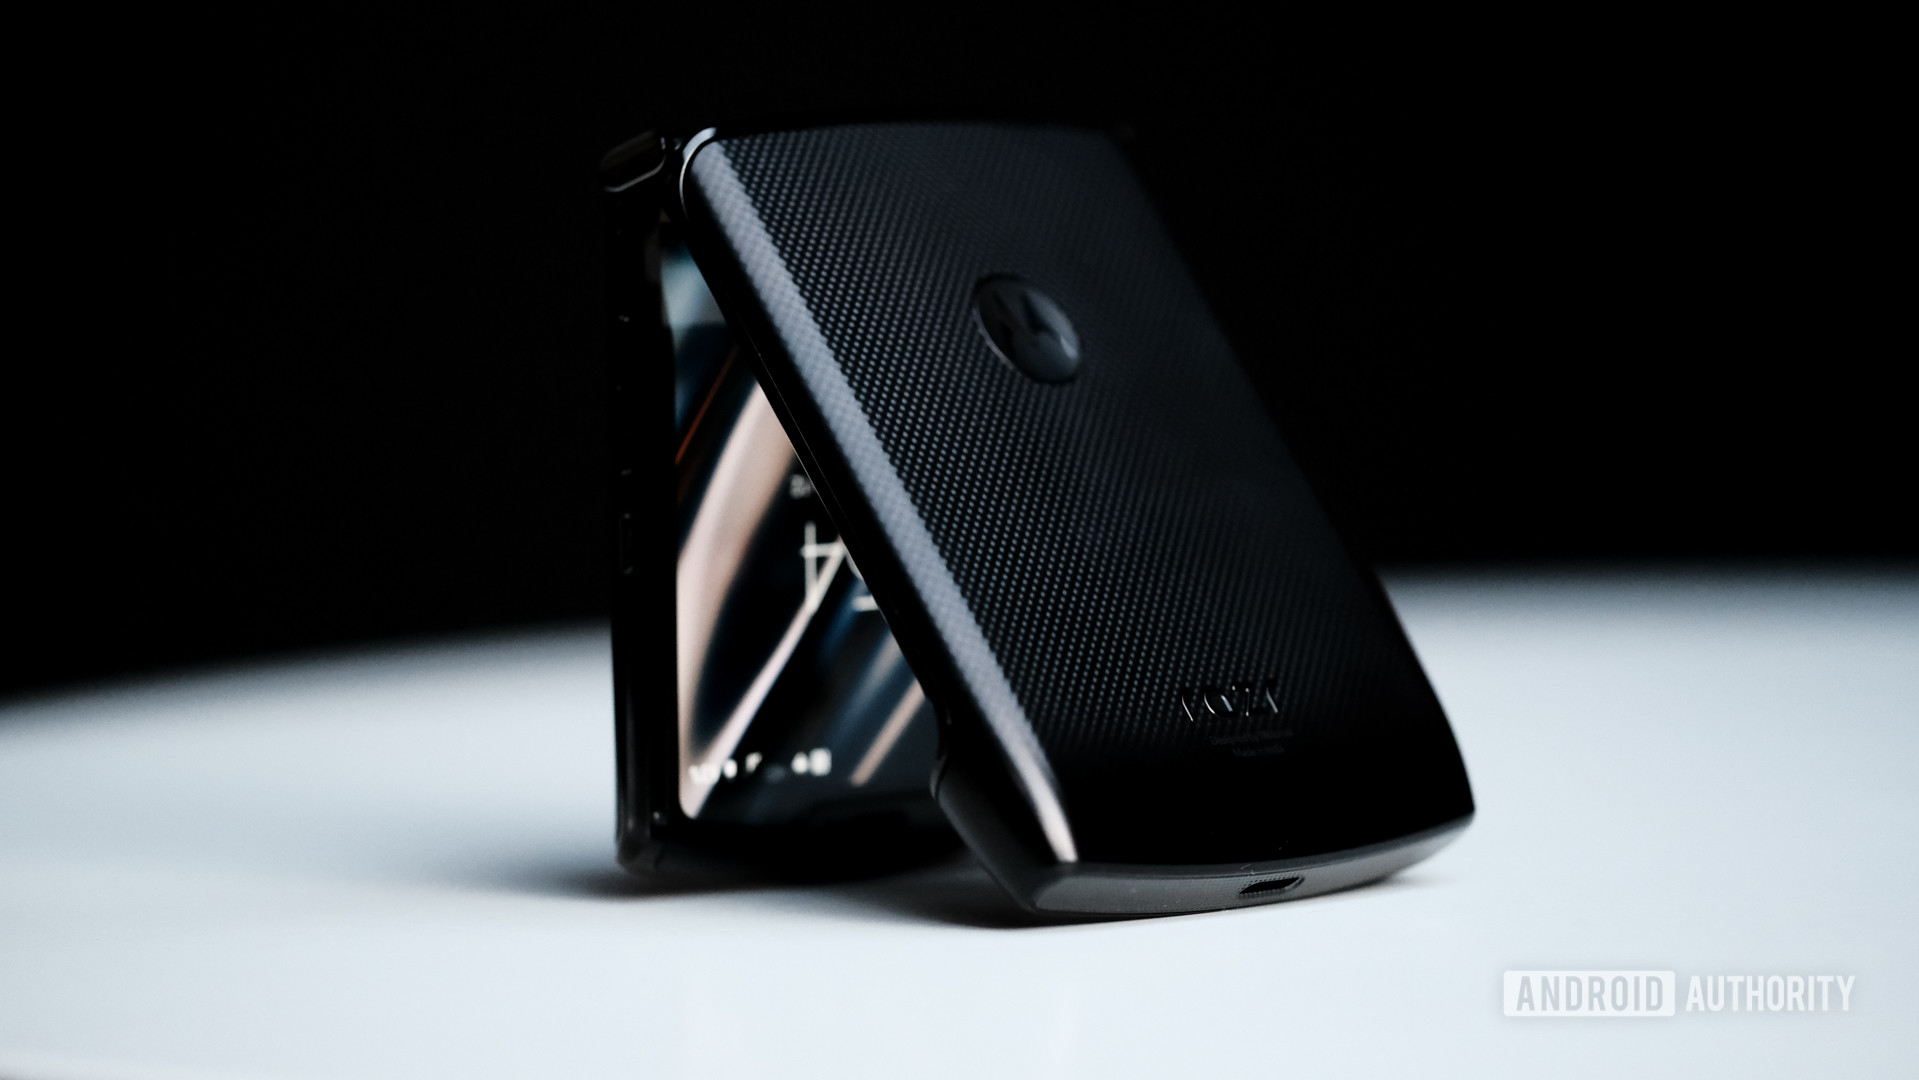 Motorola Razr 2 design just leaked — and there's bad news